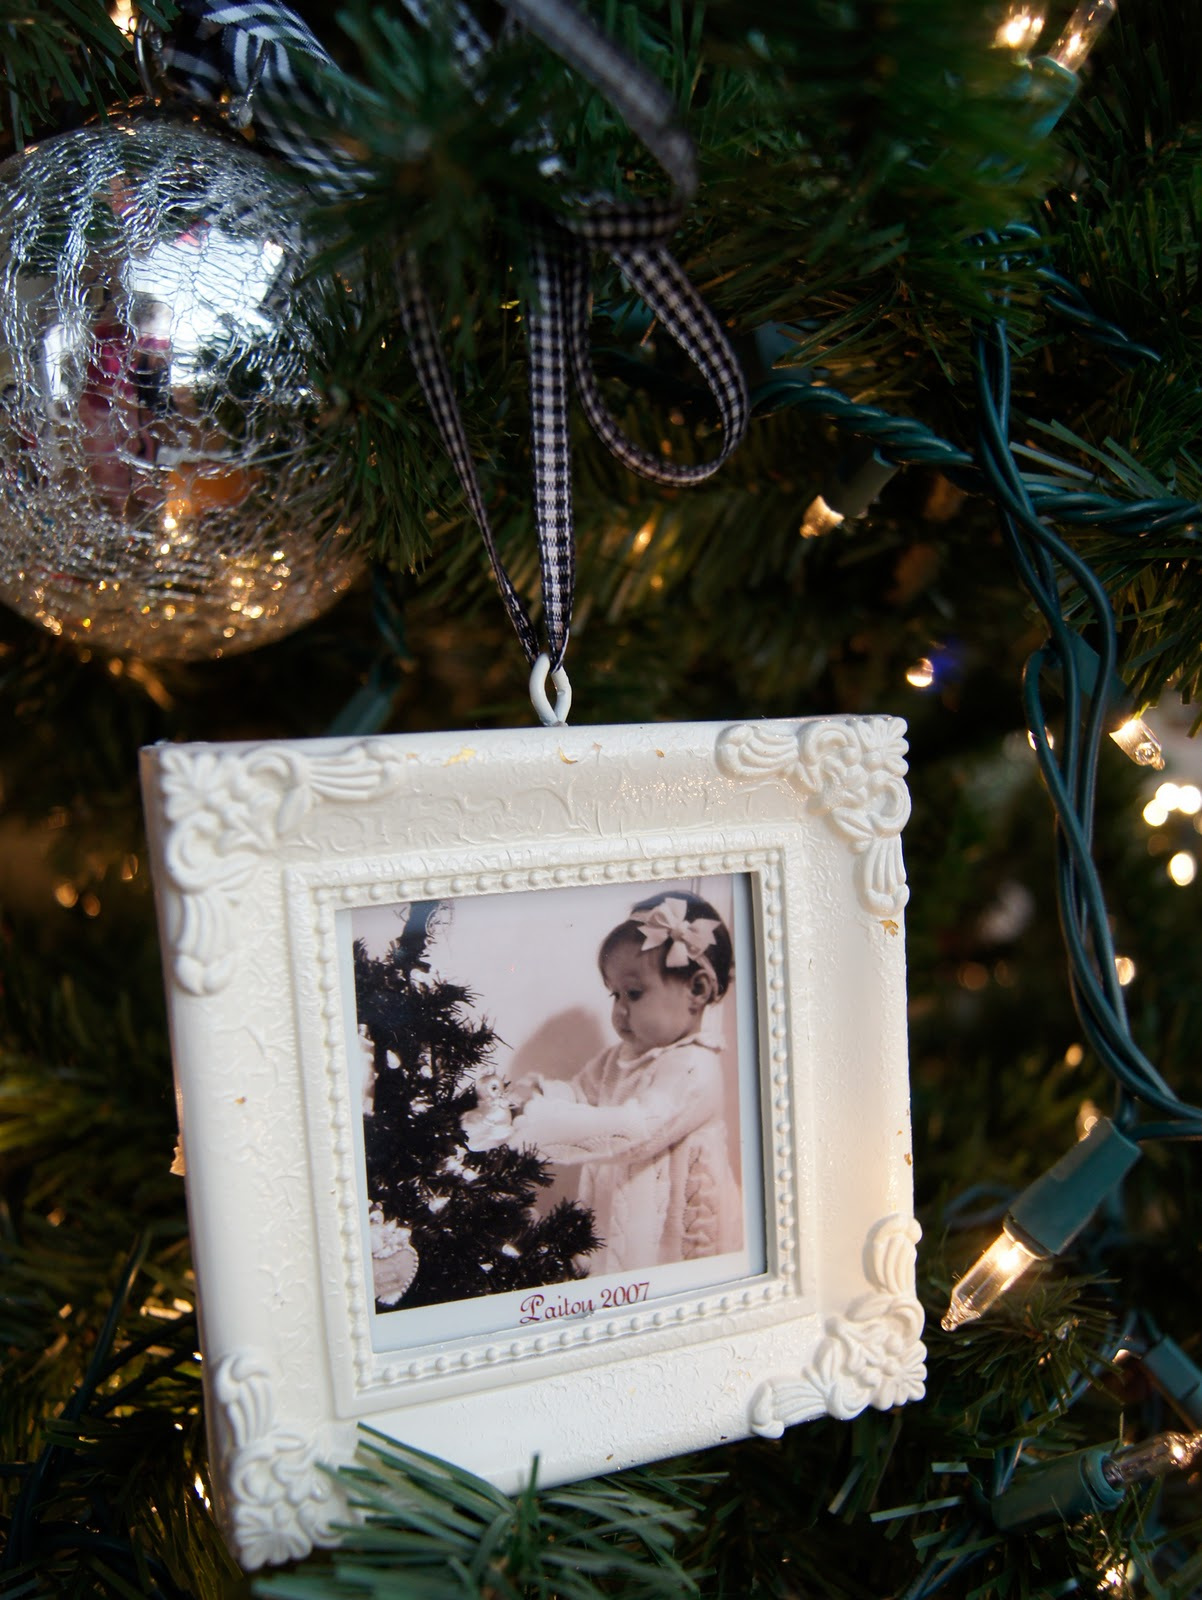 K.I.S.S. {Keep It Simple, Sister}: Pottery Barn-Inspired Picture Frames Ornaments {for $1}